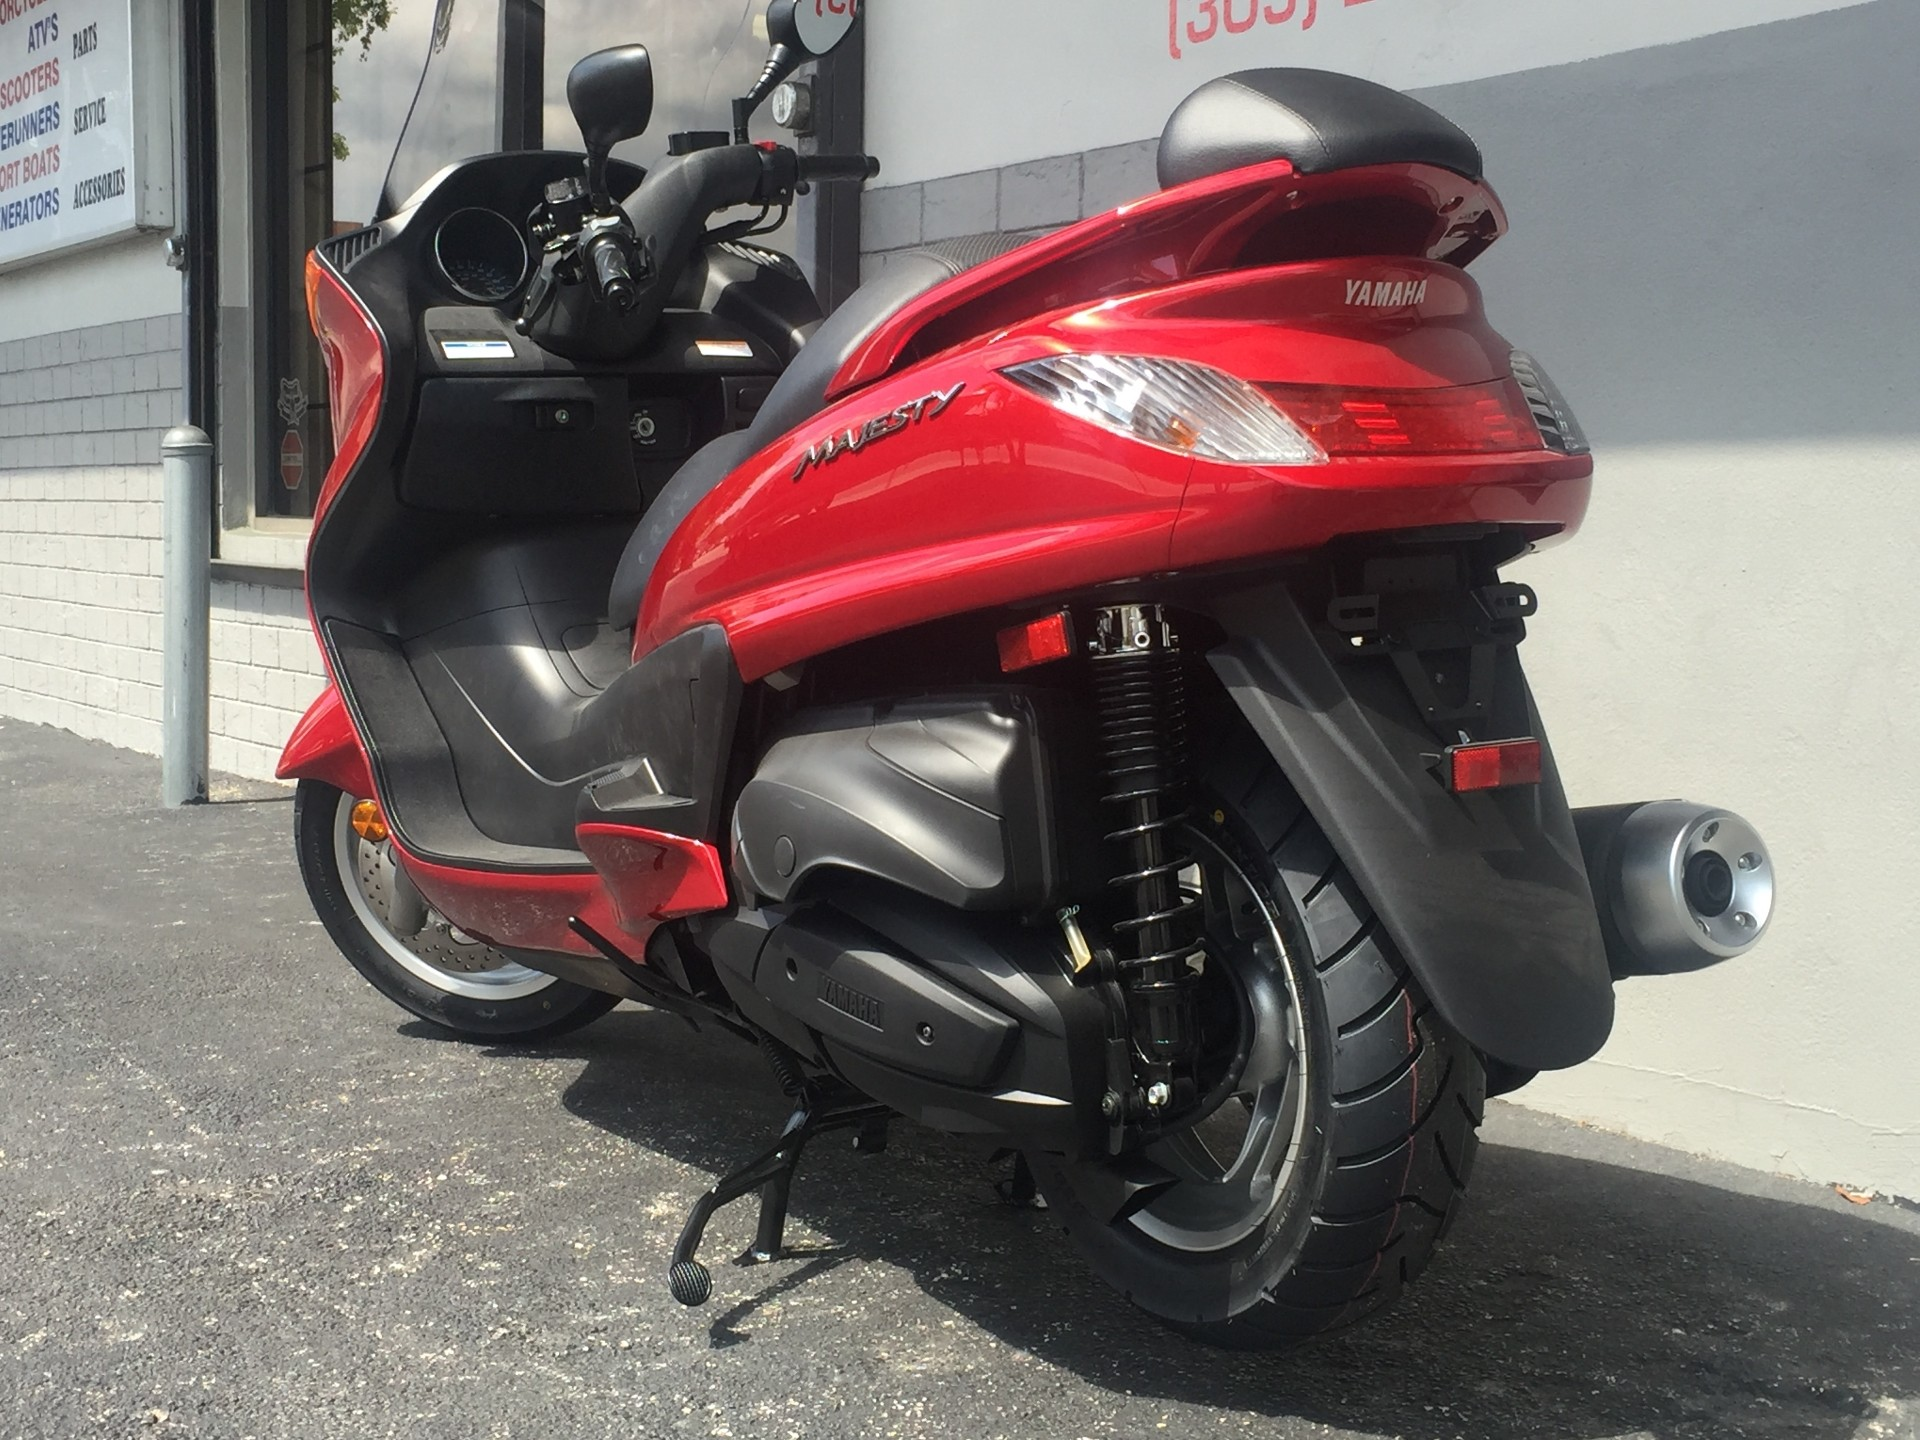 2014 Yamaha Majesty in Miami, Florida